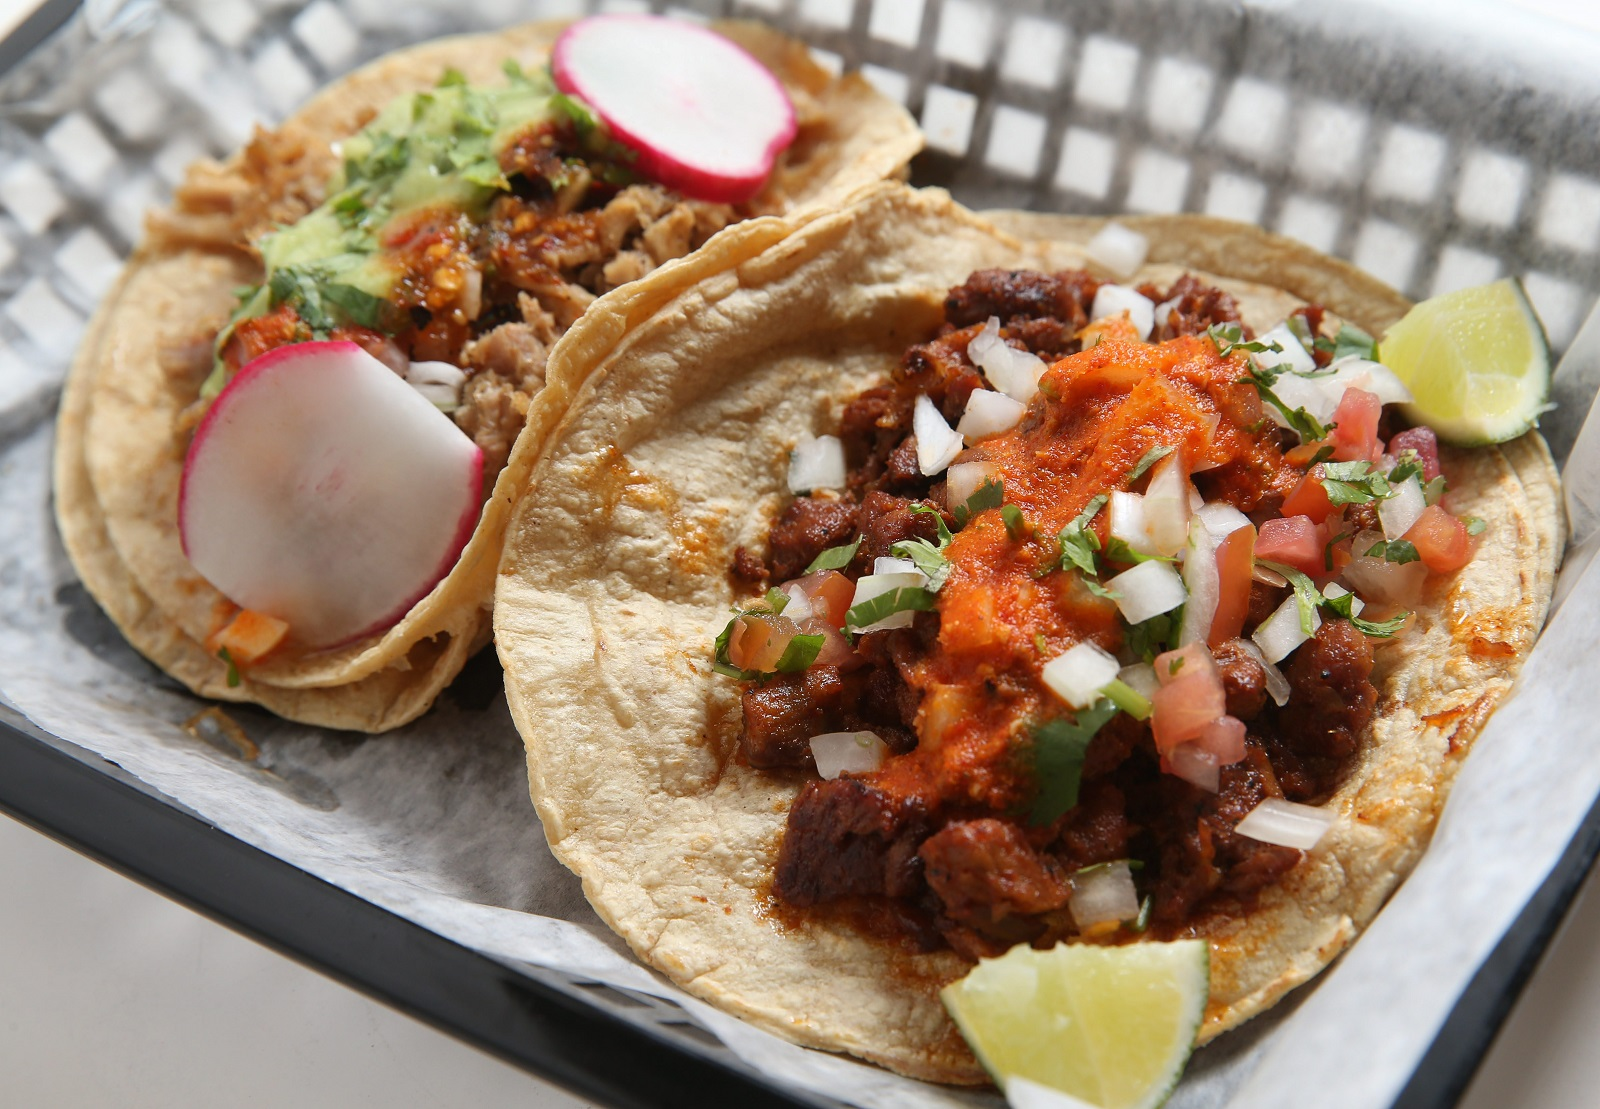 La Divina Dos offers tacos like carnitas (left) and al pastor (right)(Sharon Cantillon/Buffalo News)